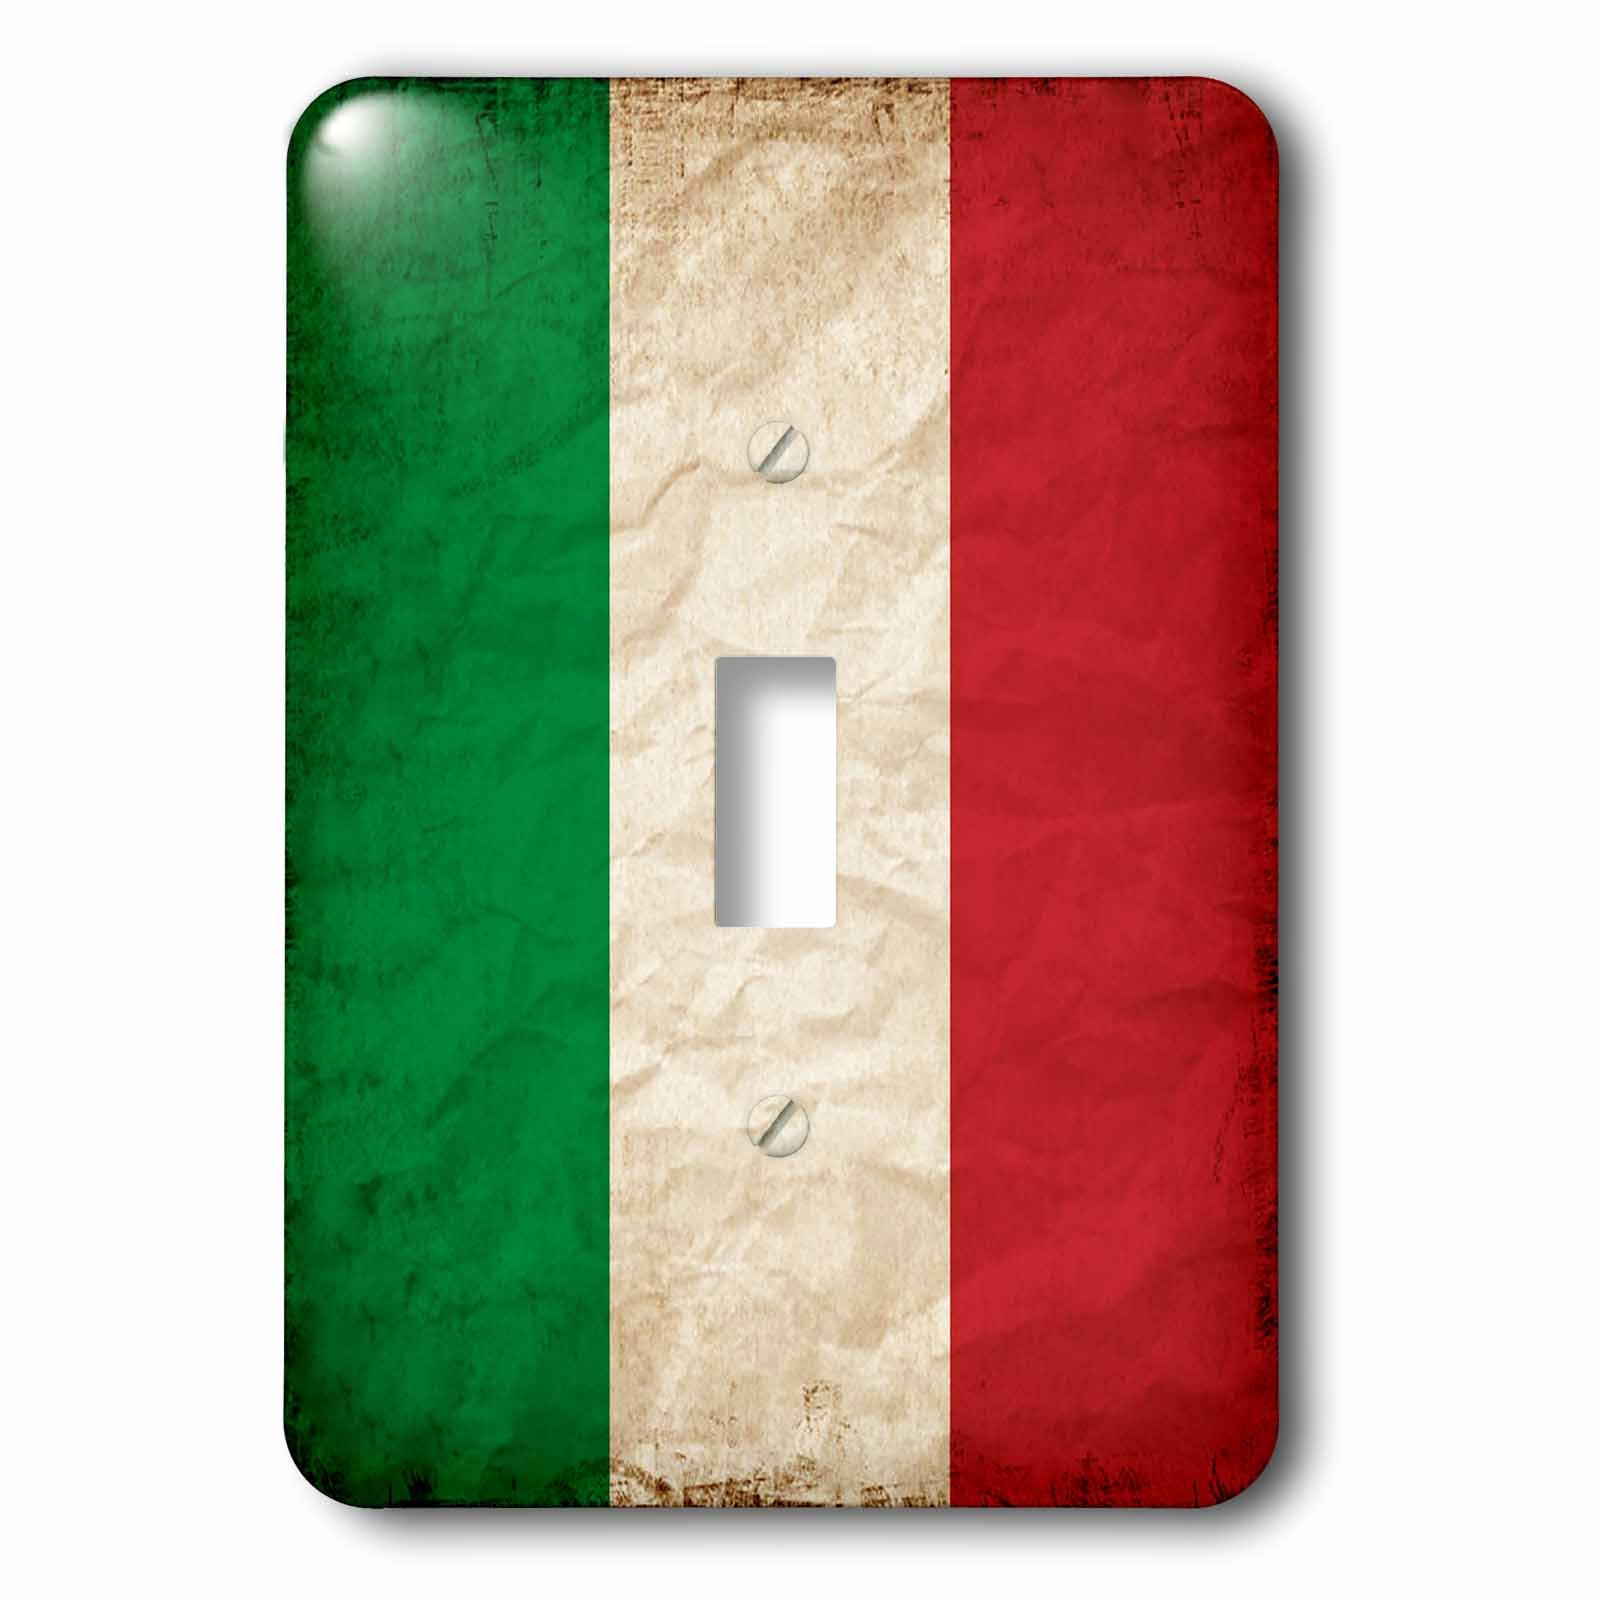 3dRose Sven Herkenrath Flags - Italian Flag Old Look Trendy Work - Light Switch Covers - single toggle switch (lsp_255823_1)